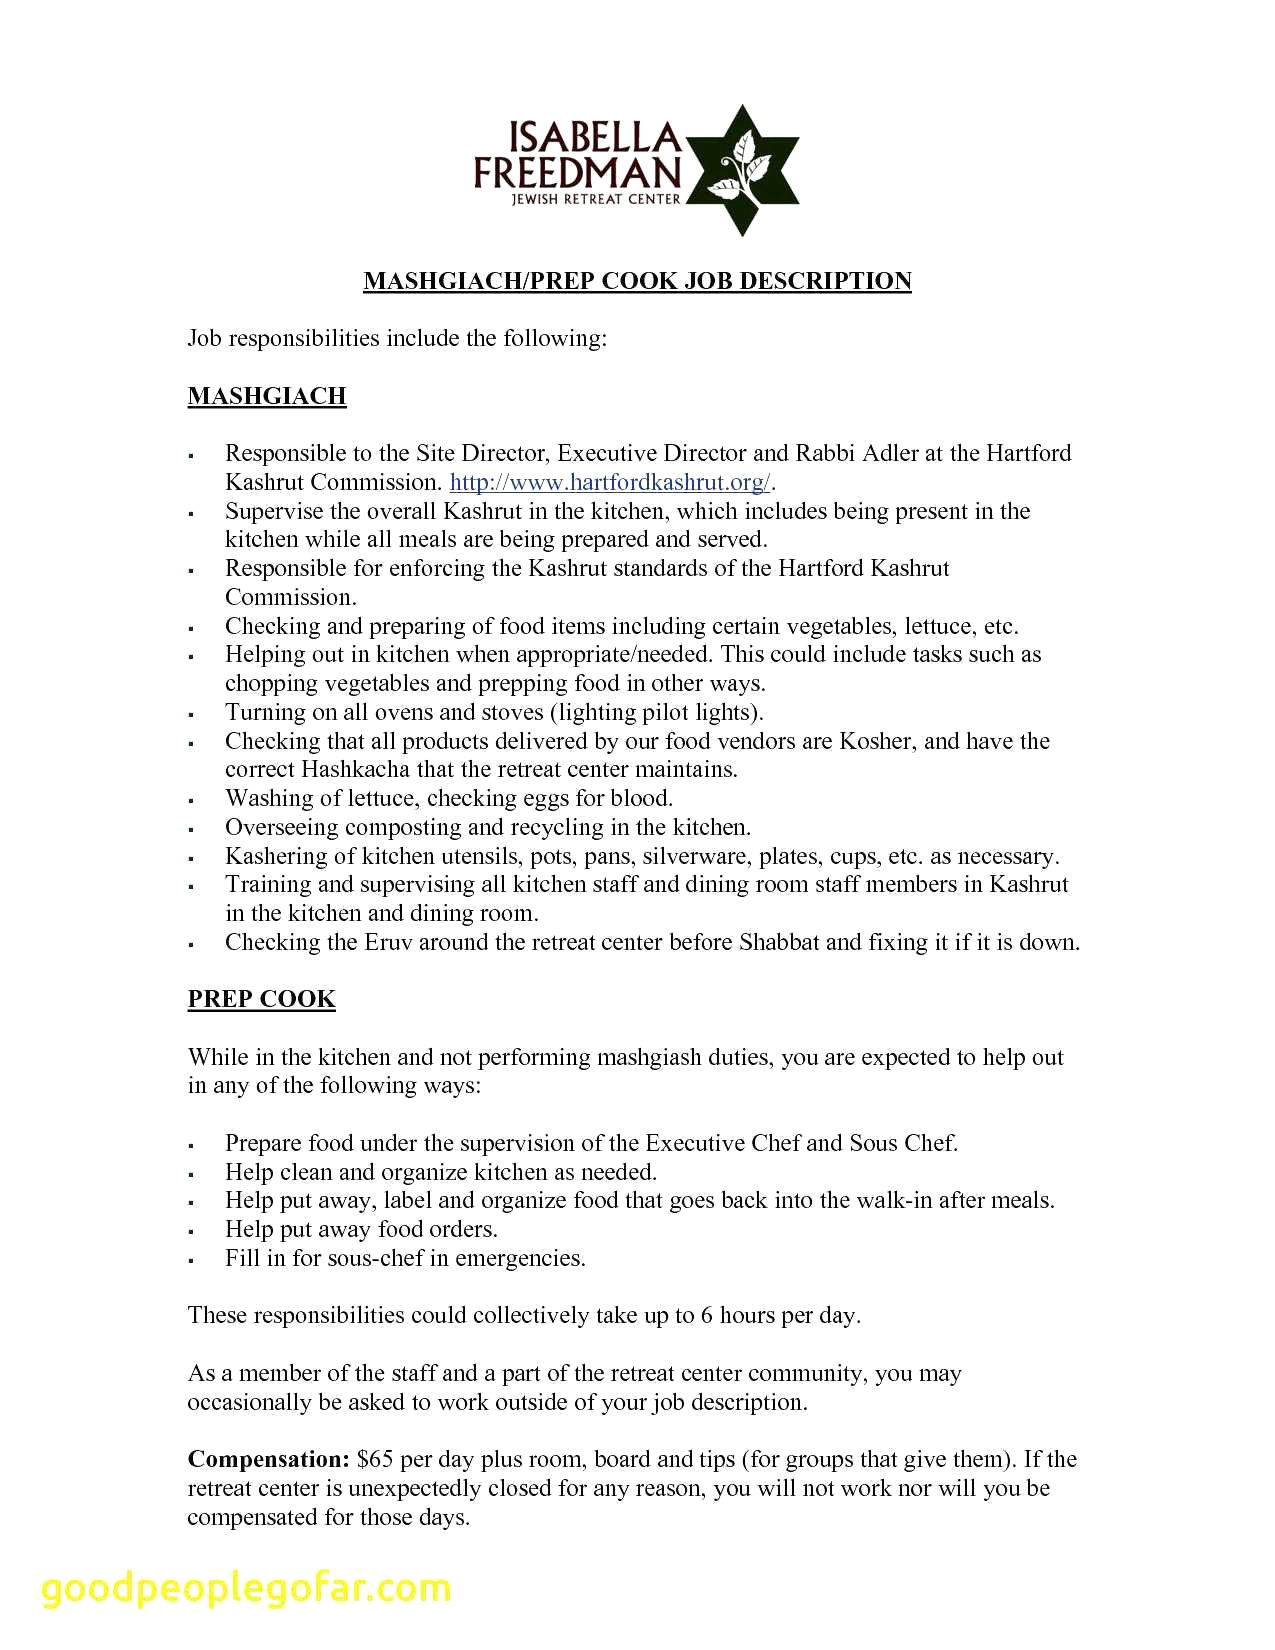 Sales Rep Duties Resume - 37 Inspirational Sales Representative Resume